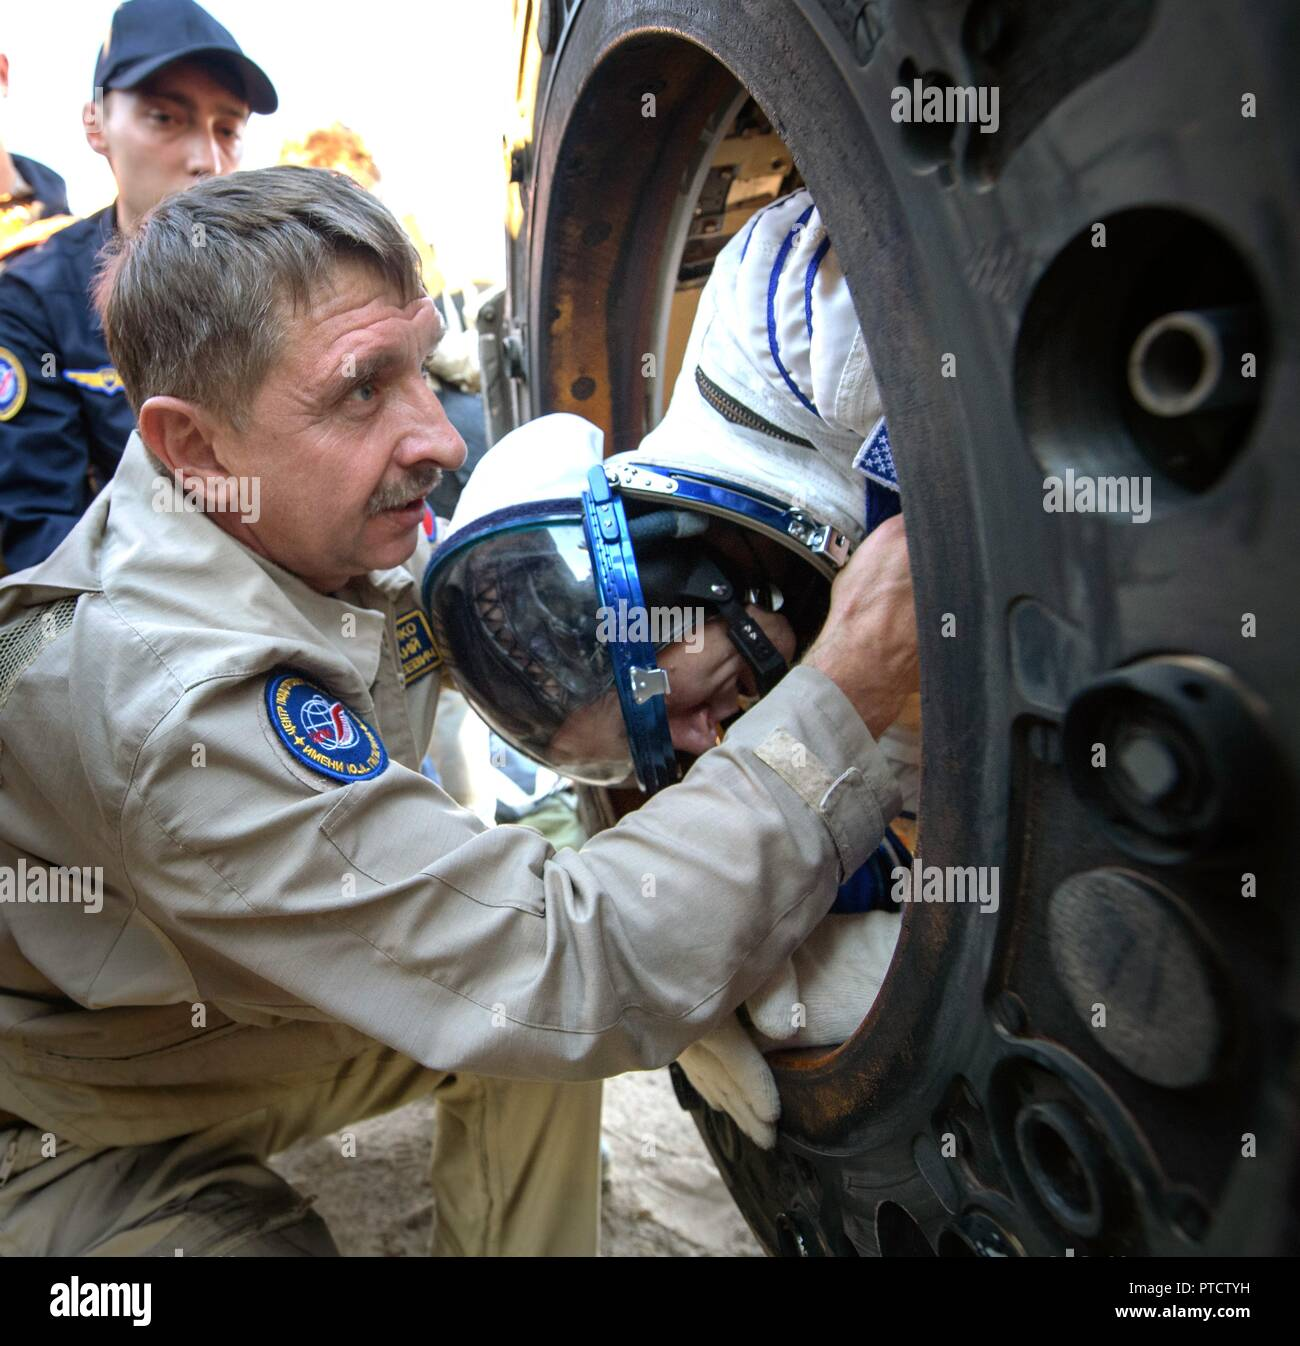 International Space Station Expedition 56 astronaut Drew Feustel is helped out from the Russian Soyuz MS-08 spacecraft shortly after landing October 4, 2018 near Zhezkazgan, Kazakhstan. - Stock Image